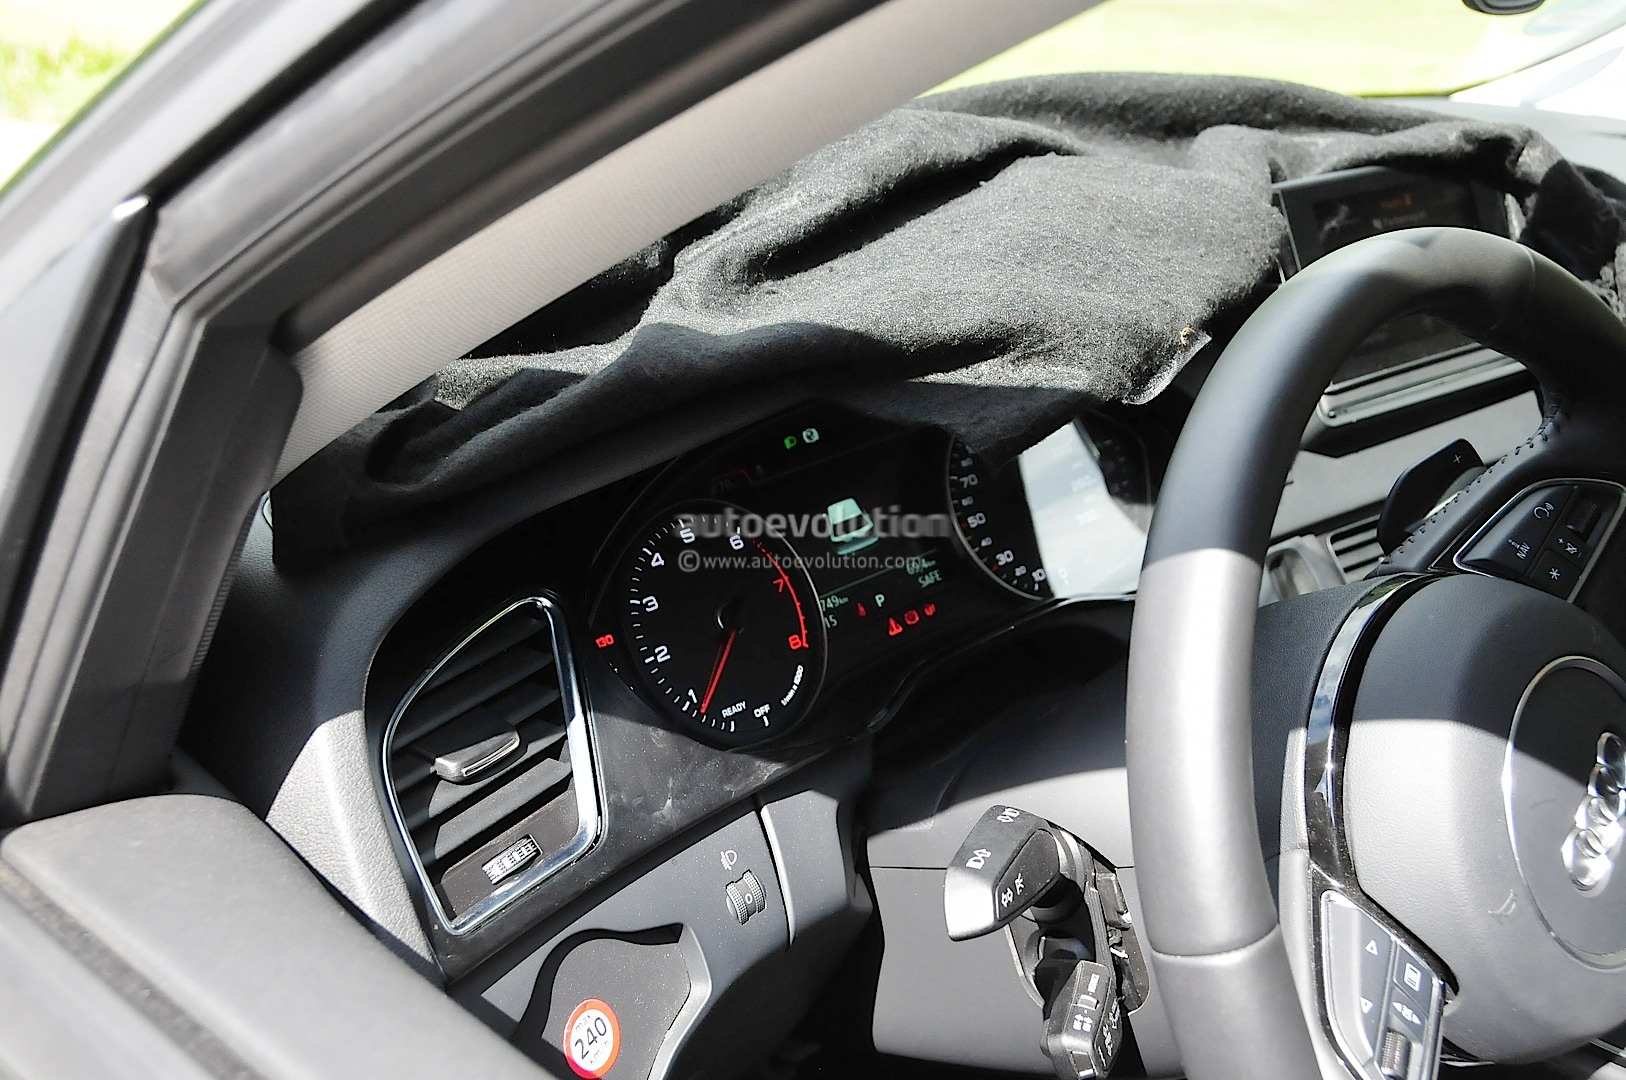 2016 Audi A4 Spyshots Reveal New Mmi Infotainment Display Autoevolution